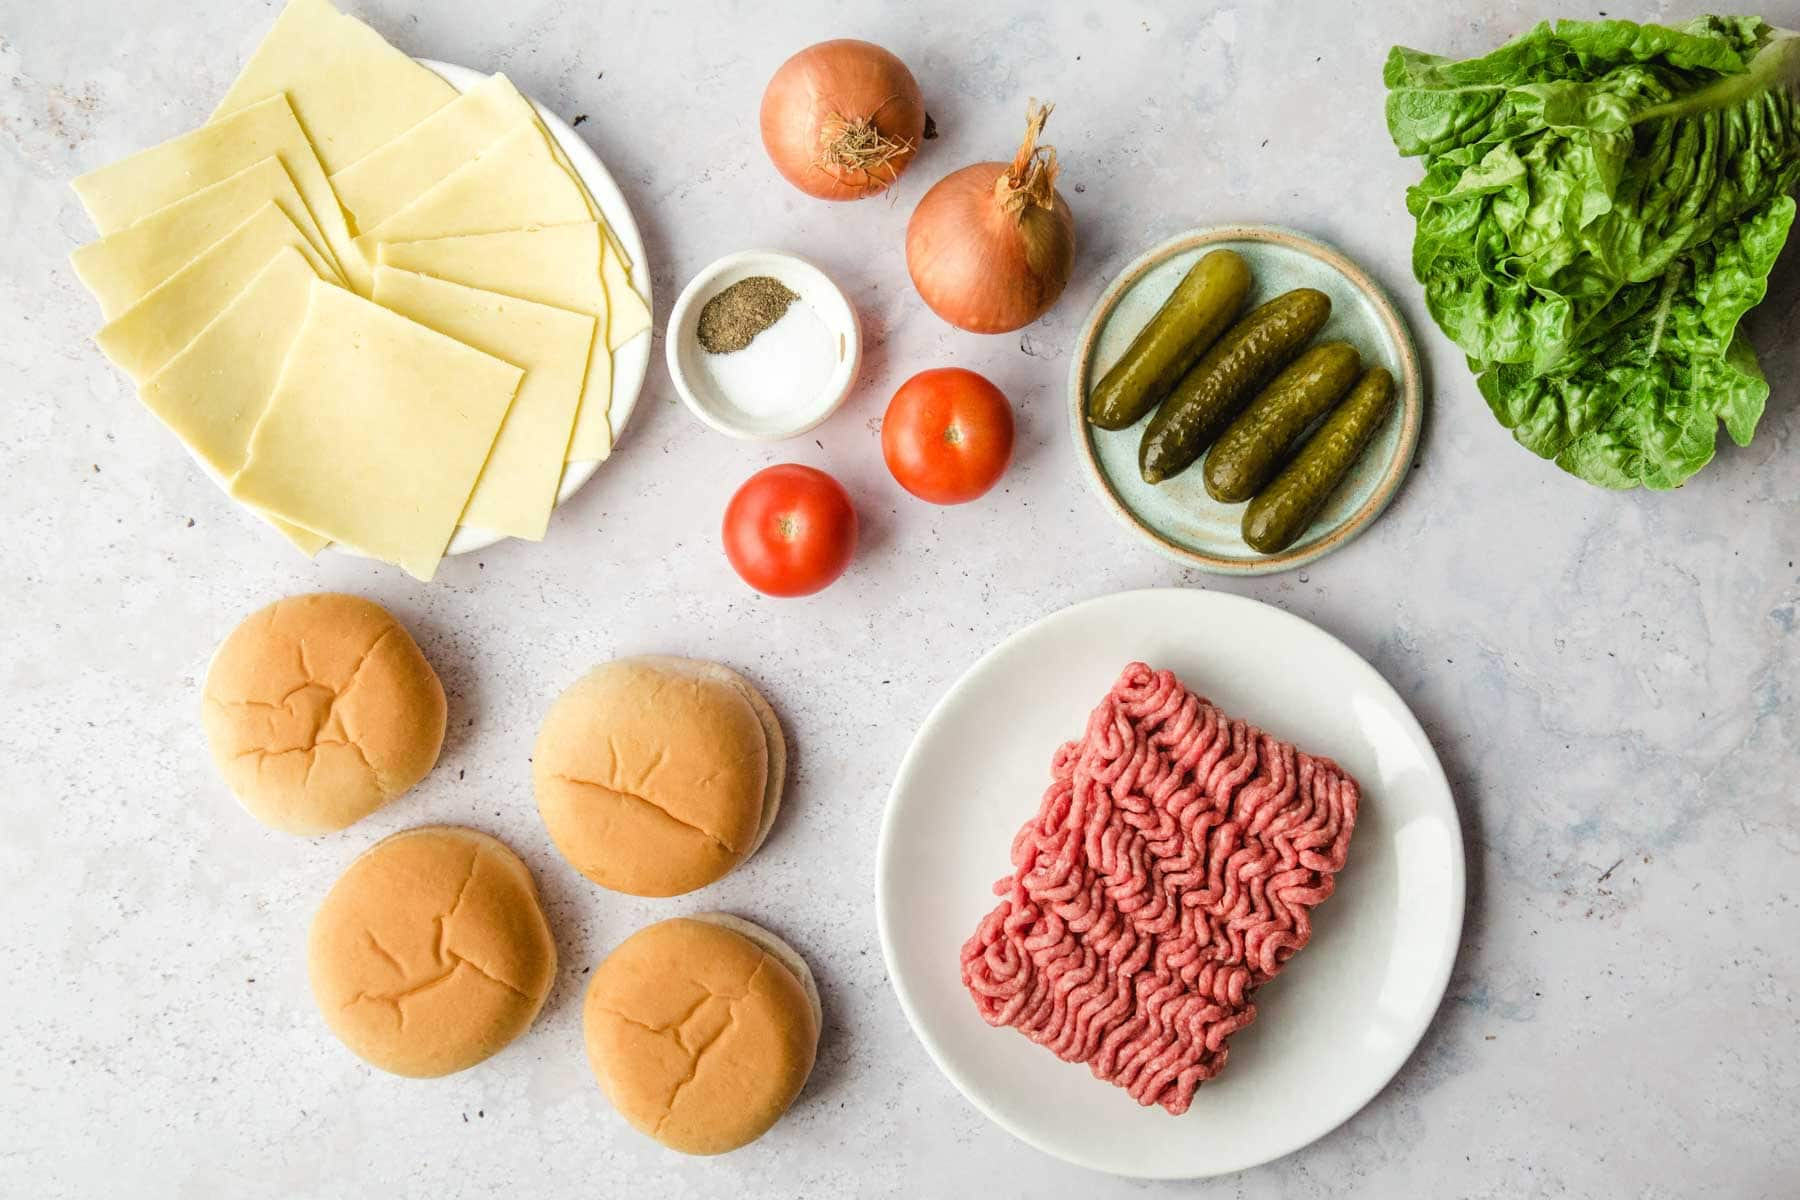 Ingredients needed to make hamburgers